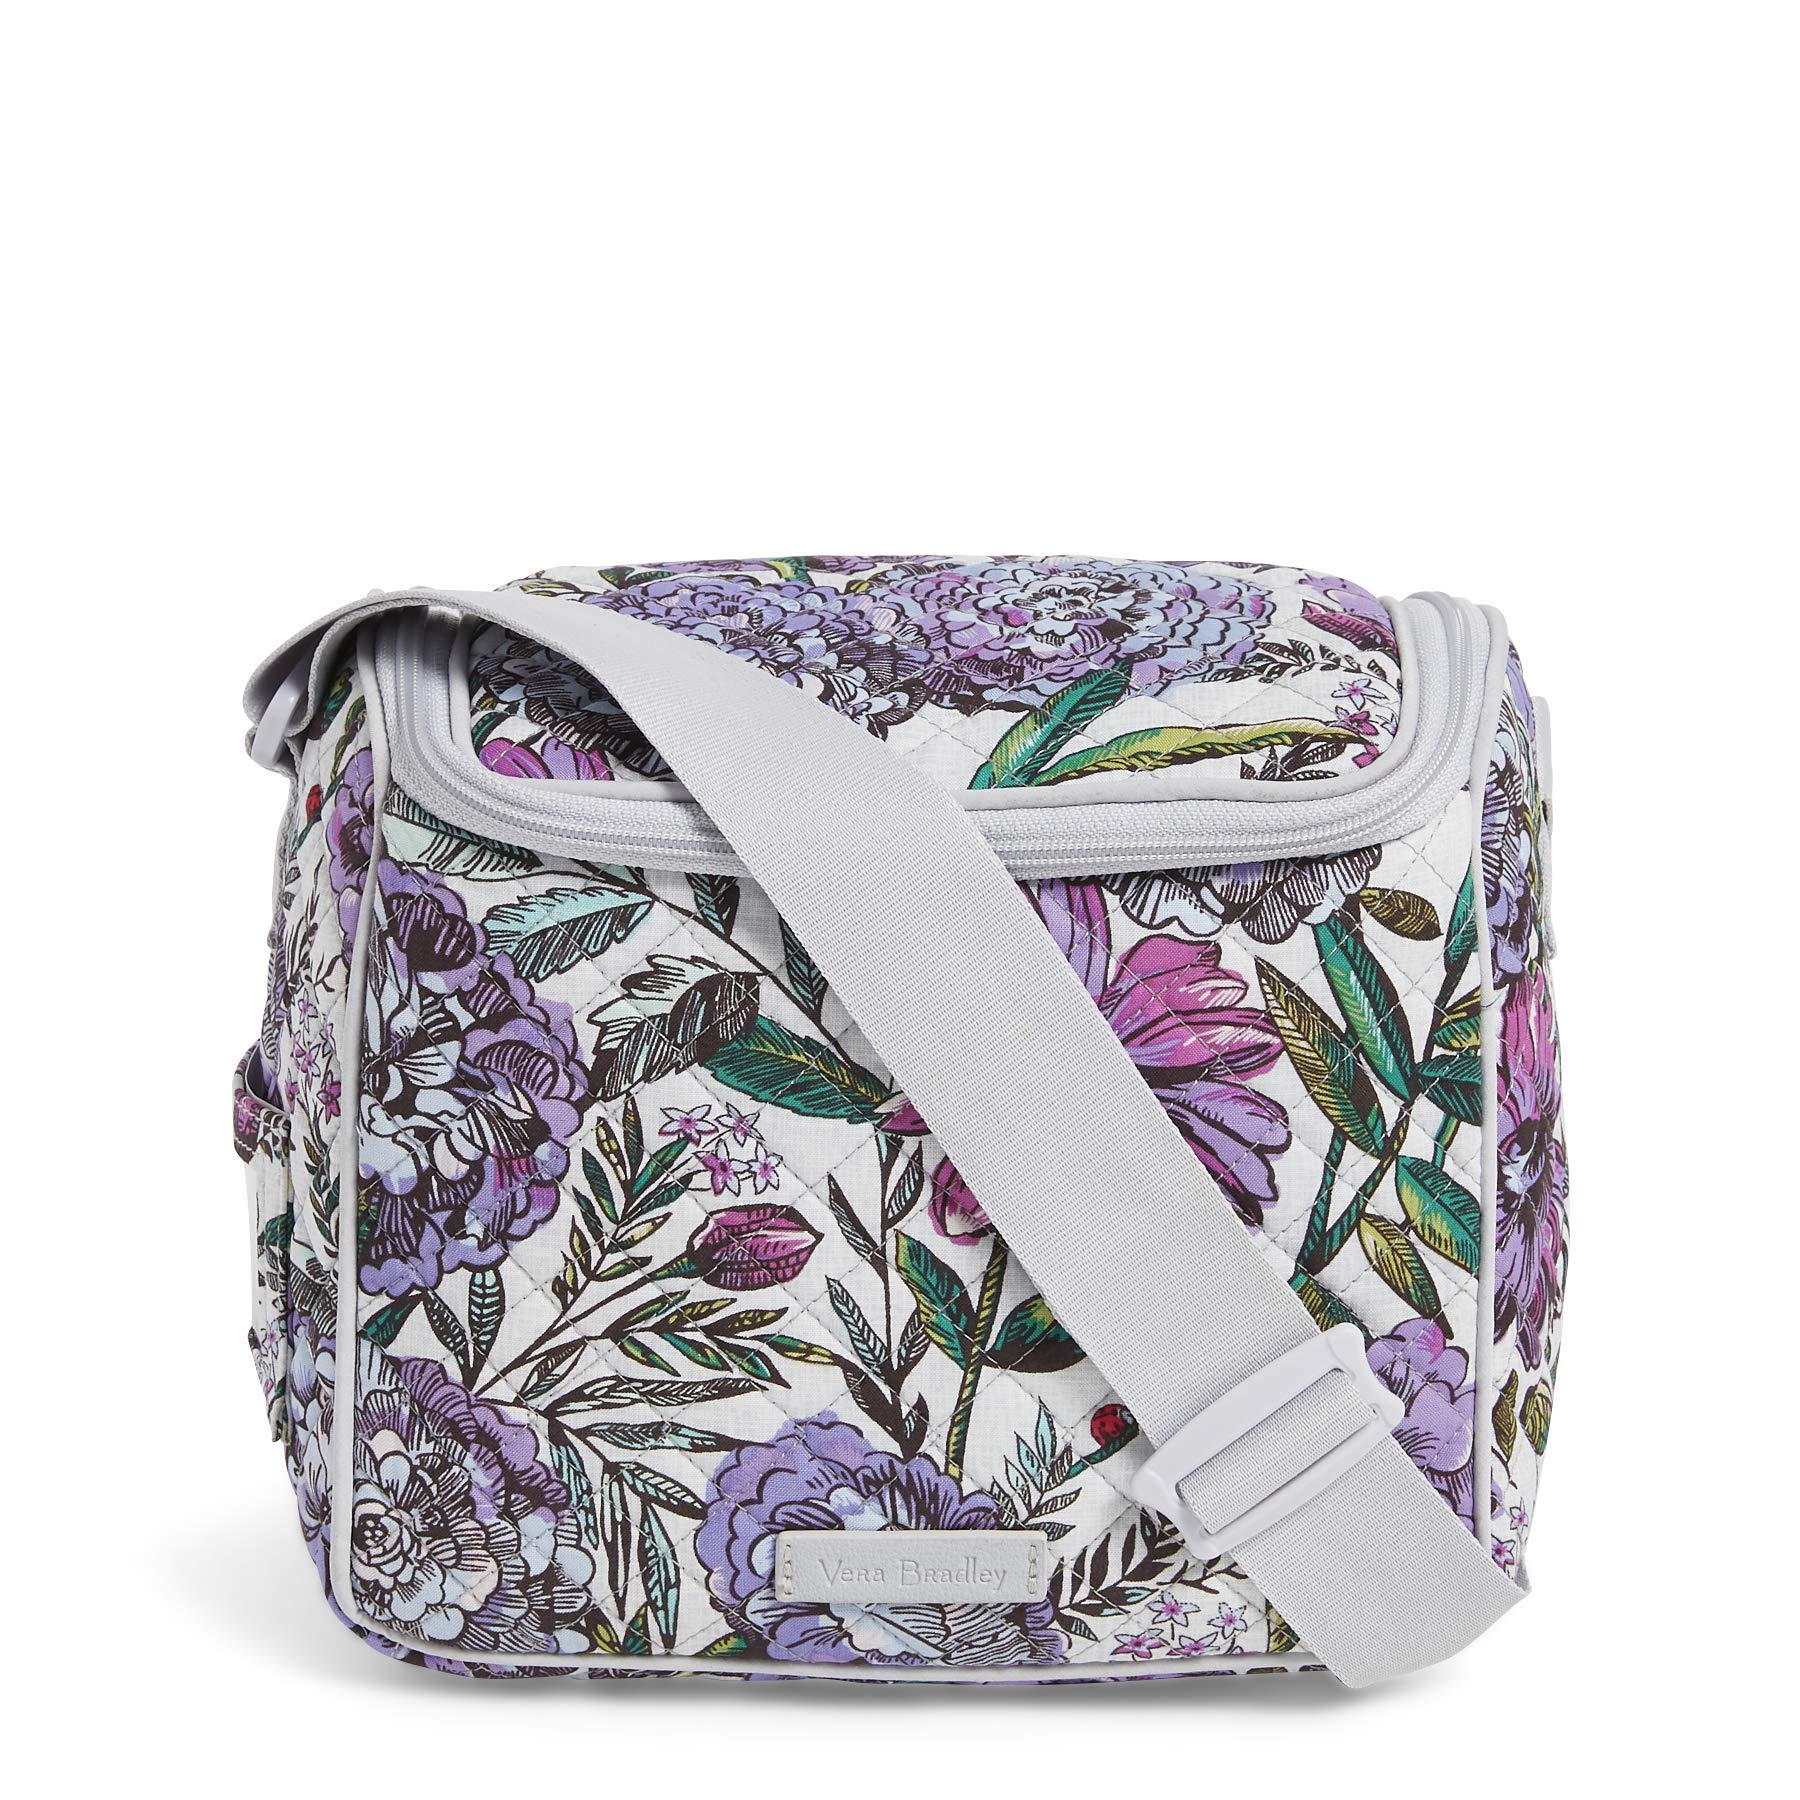 Vera Bradley Iconic Stay Cooler, Signature Cotton, Lavender Meadow